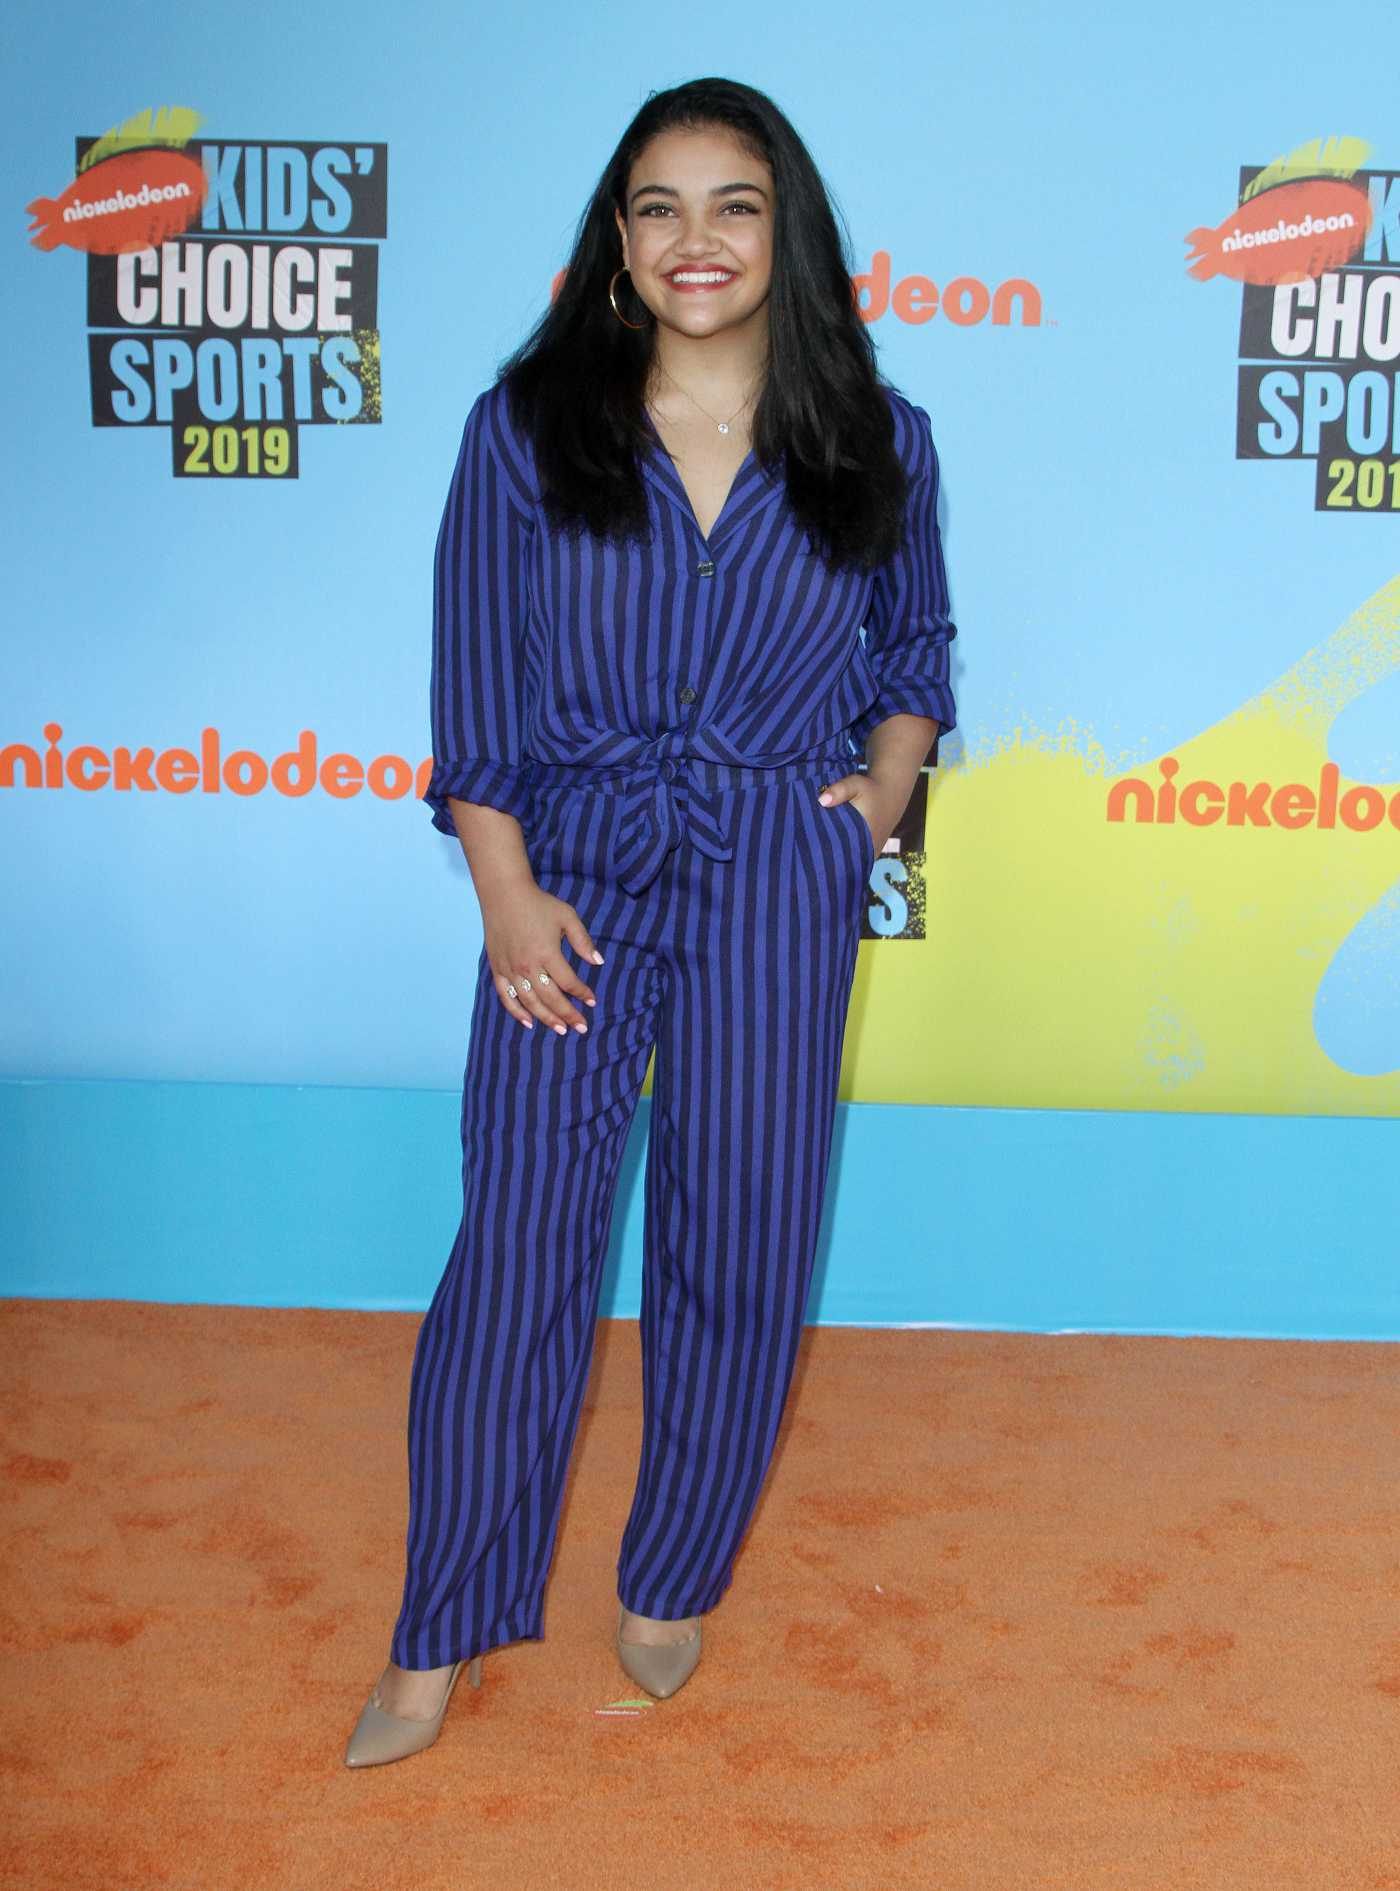 Laurie Hernandez Attends Nickelodeon Kids' Choice Sports Awards in Los Angeles 07/11/2019